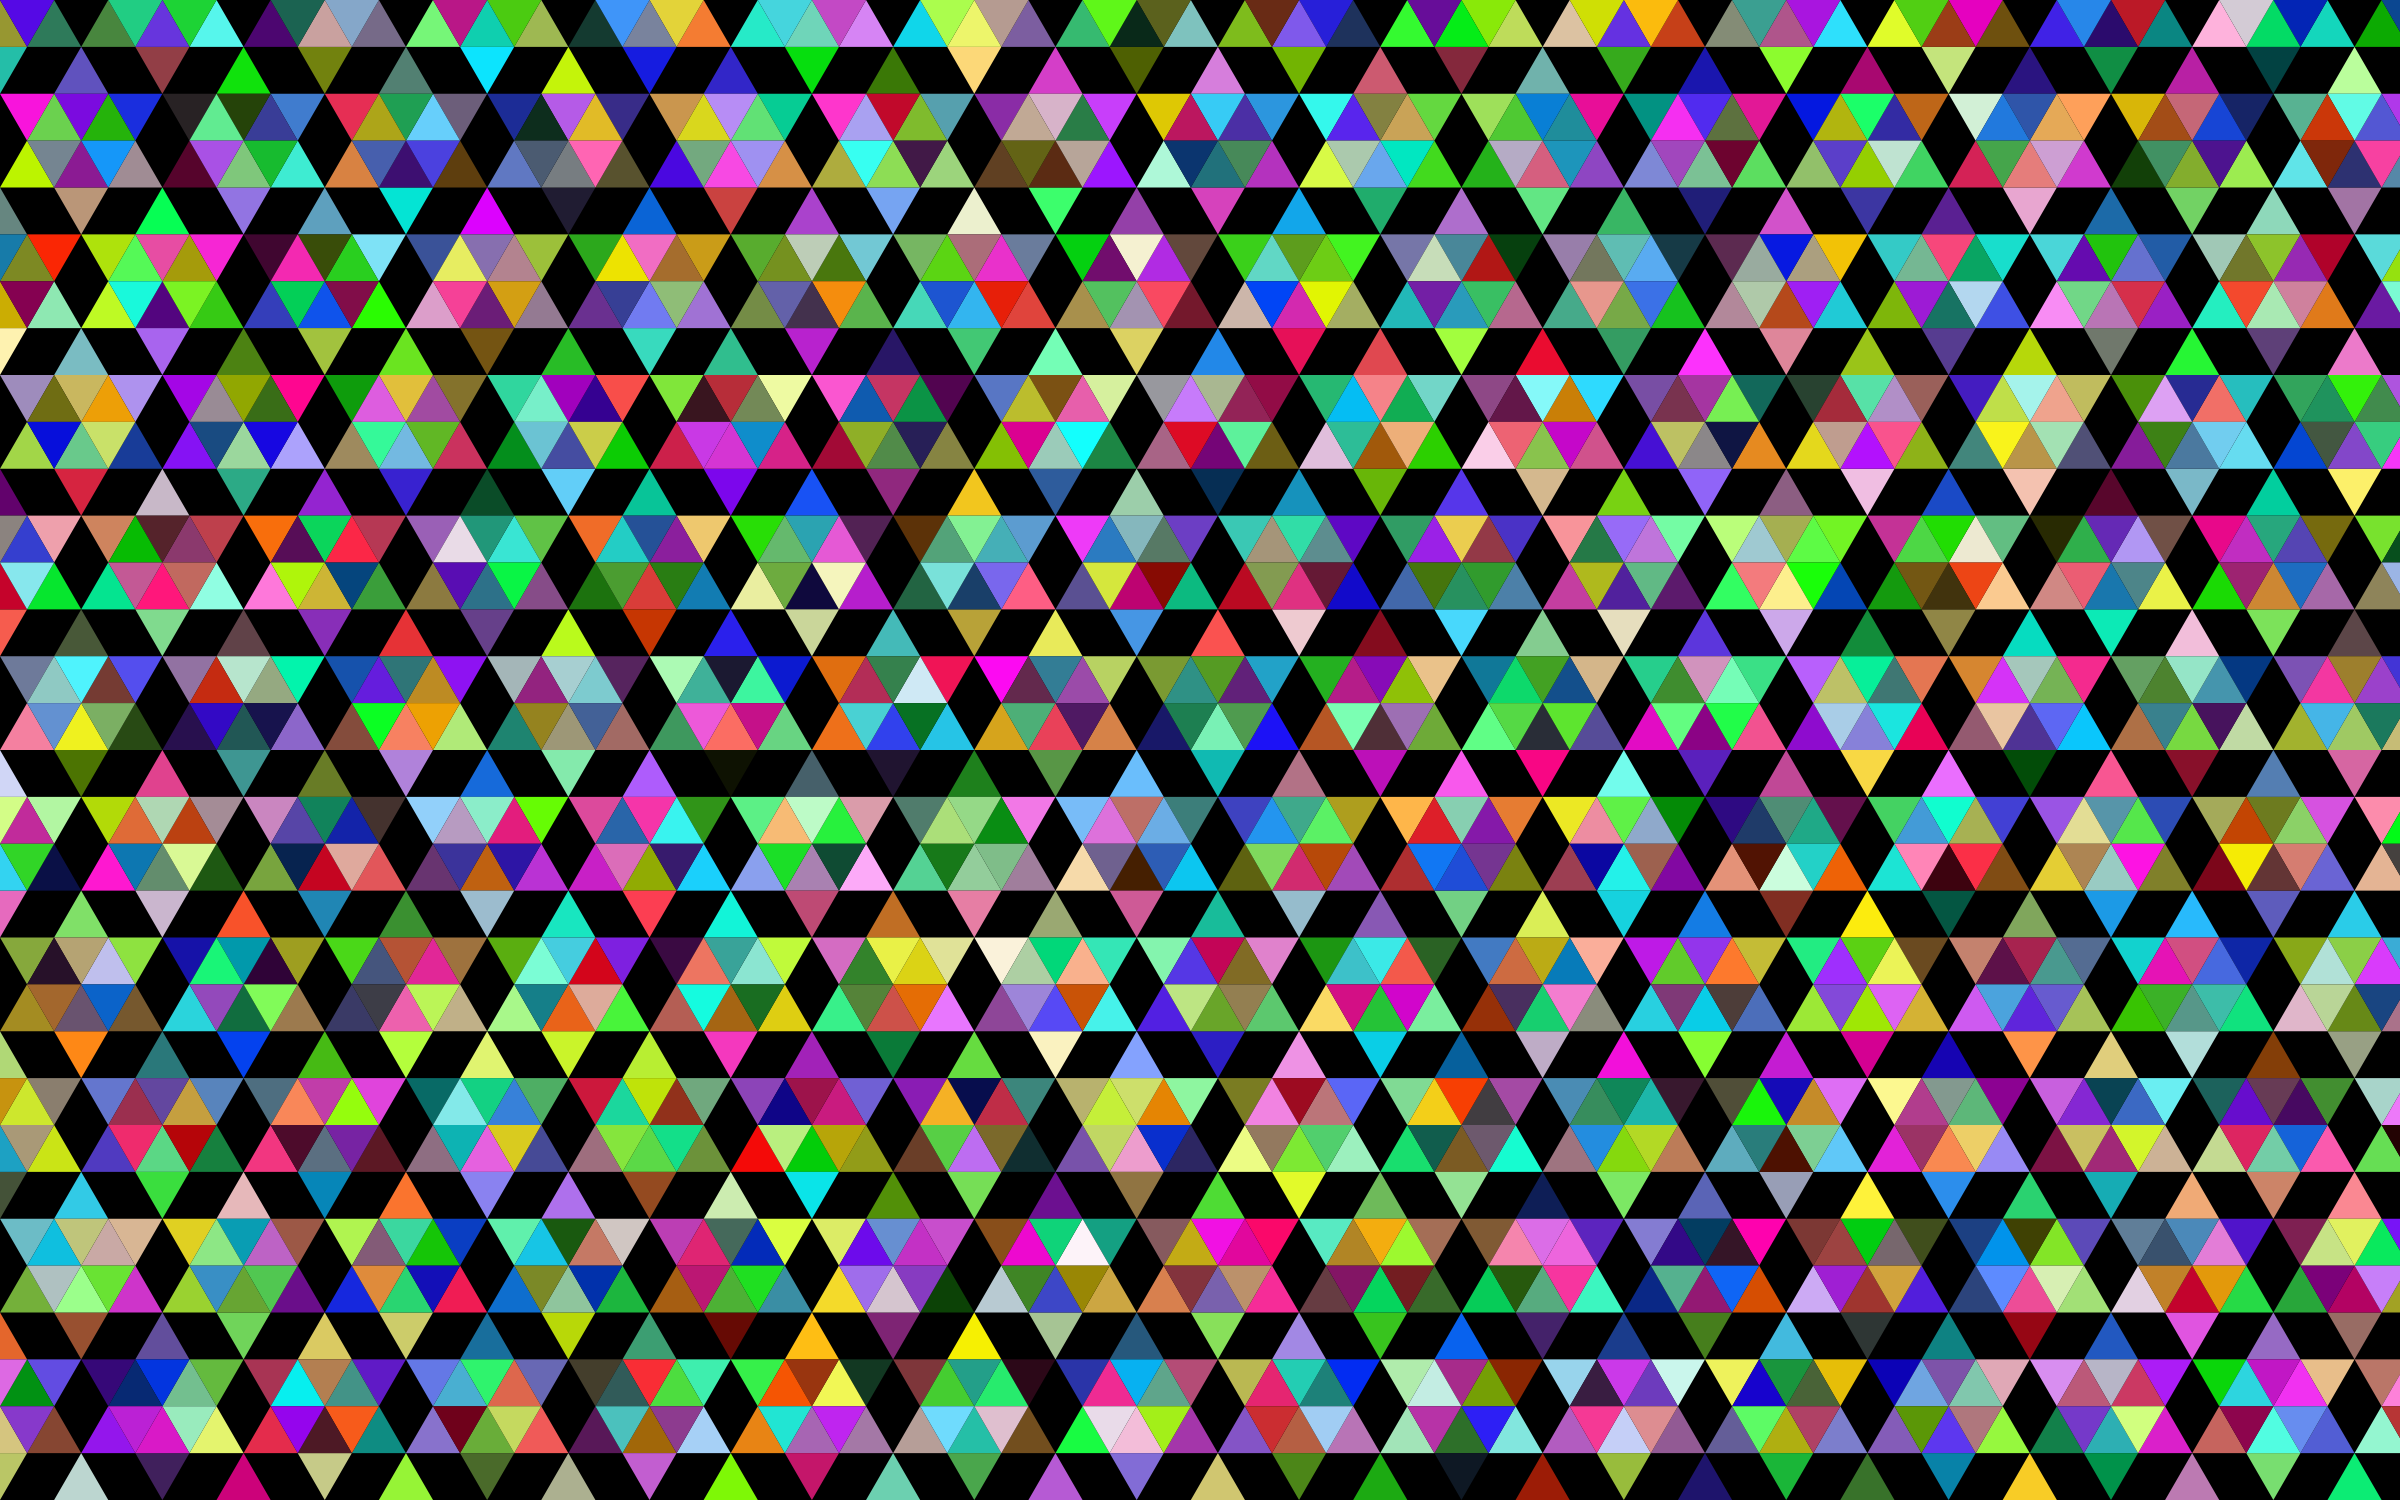 Prismatic Geometric Pattern With Background by GDJ